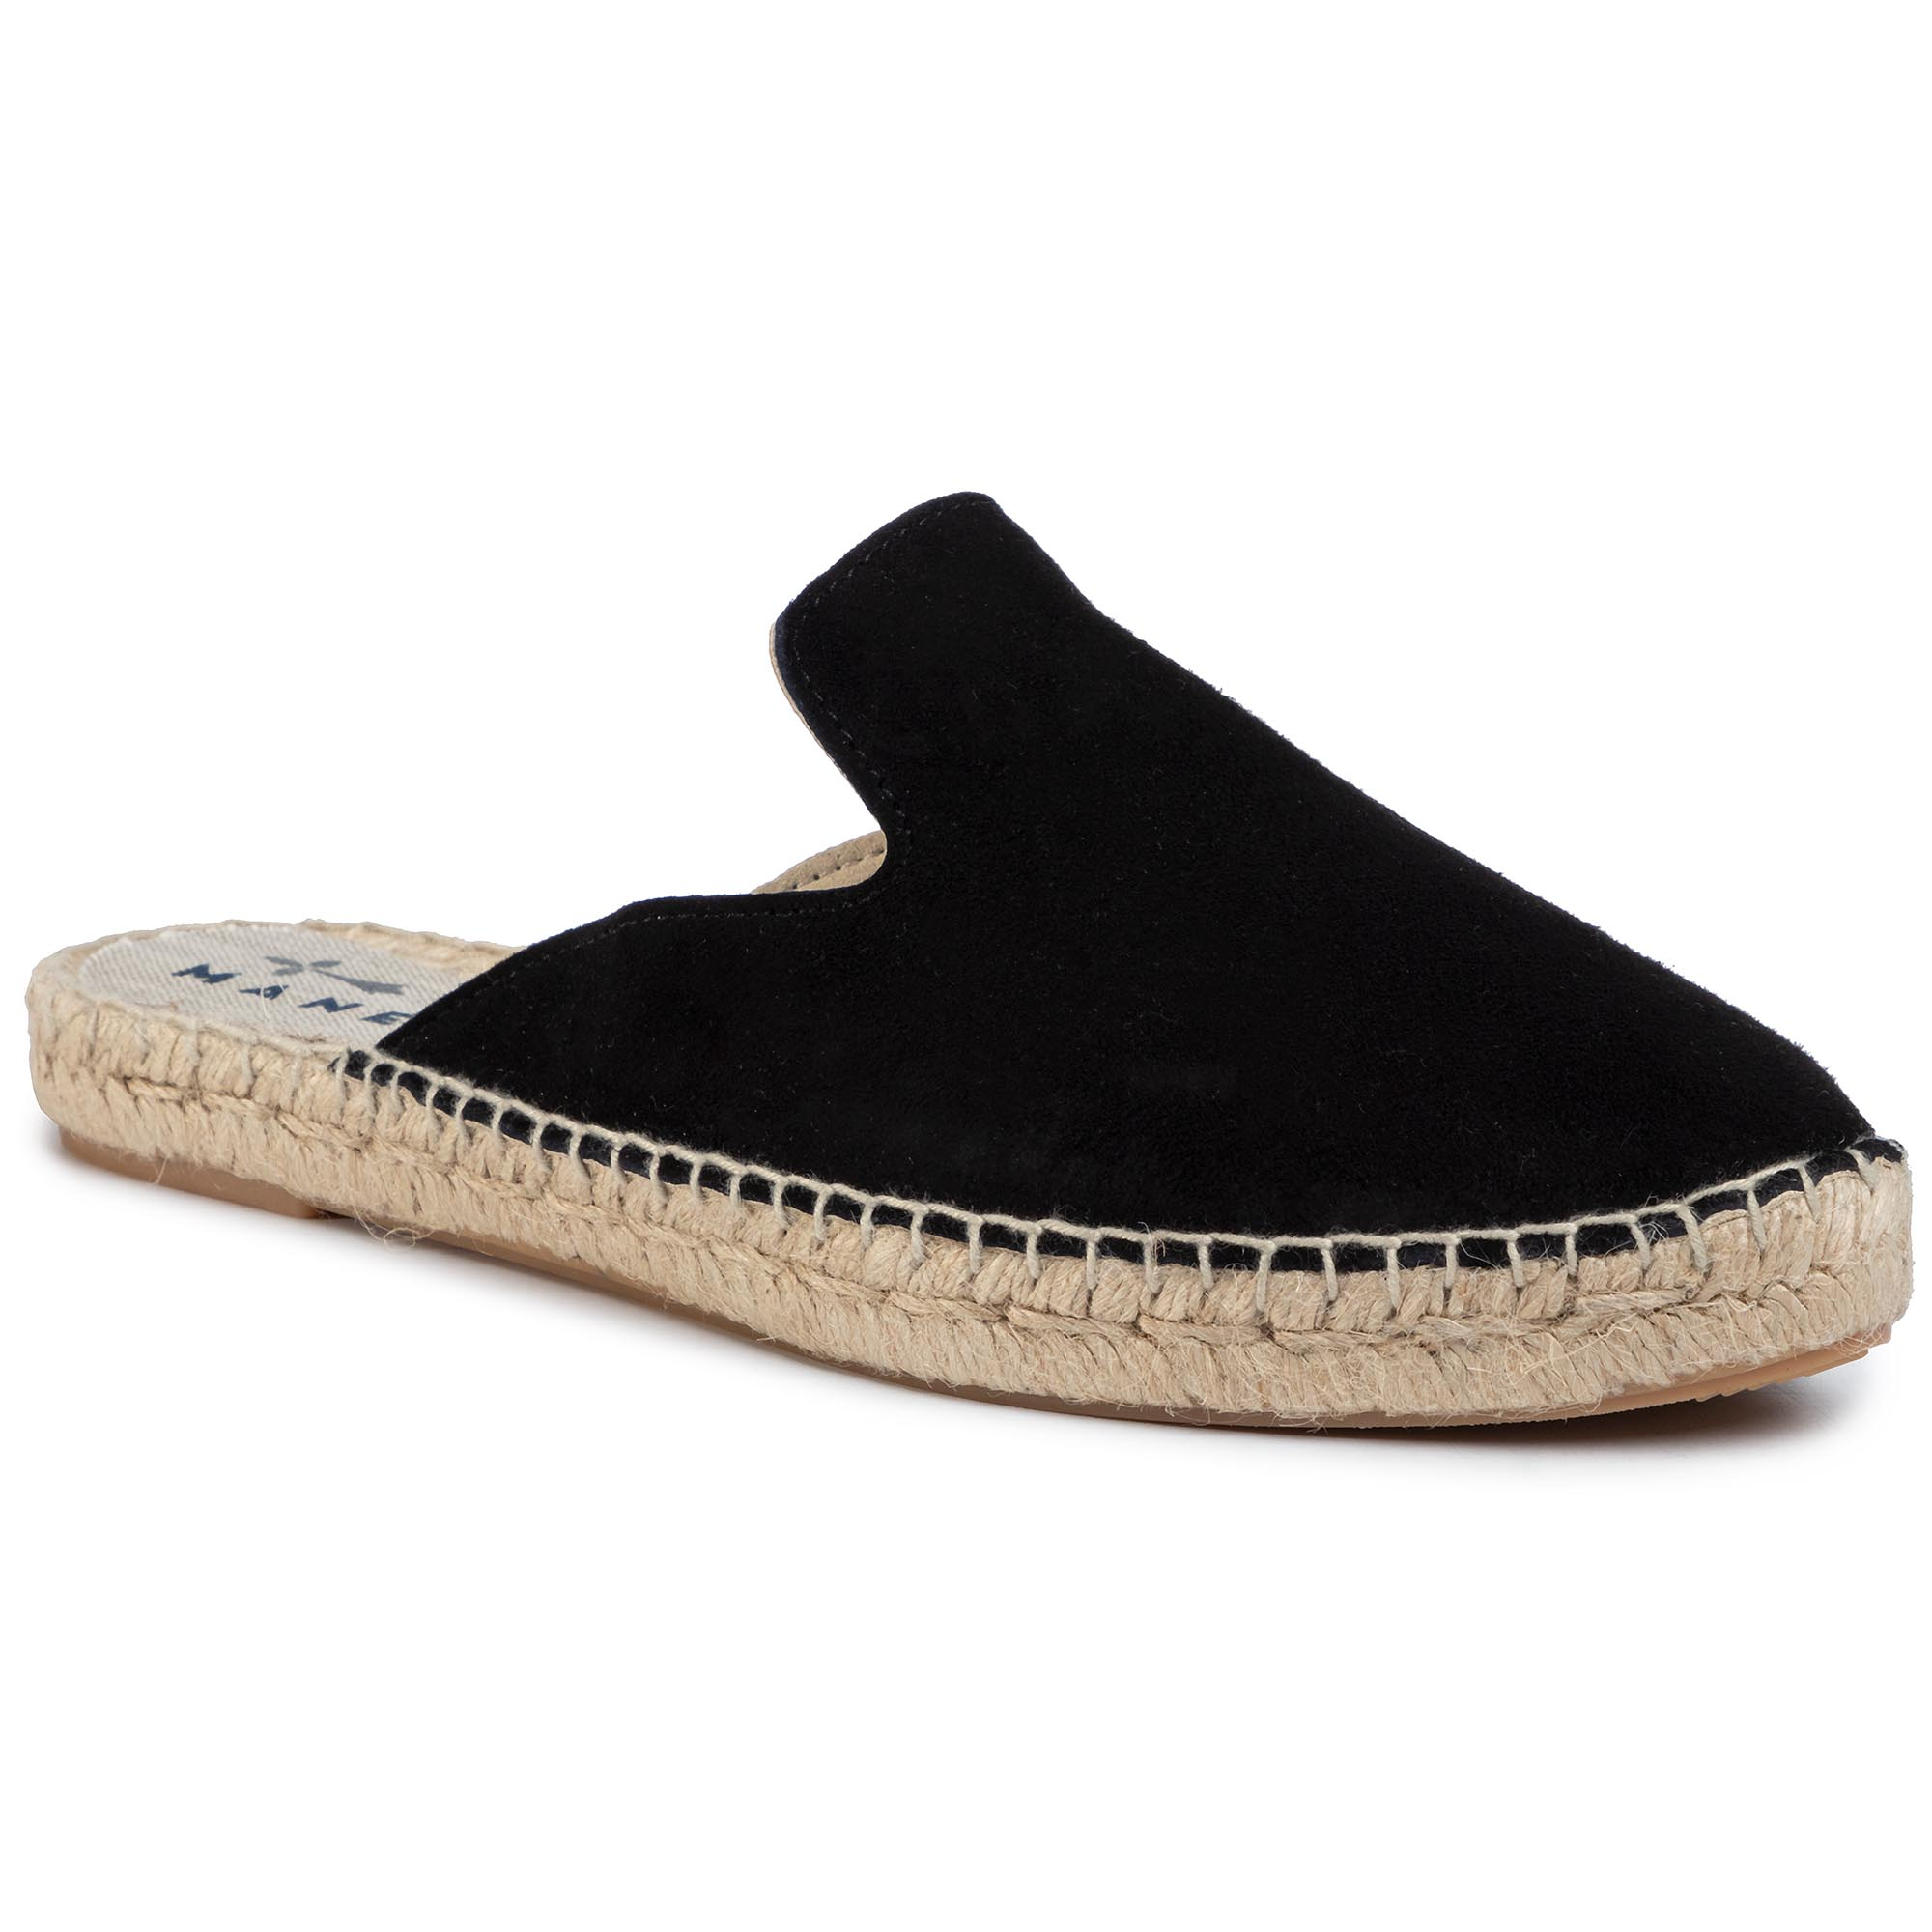 Espadrile Manebi - Mules K 1.0 M0 Black imagine epantofi.ro 2021